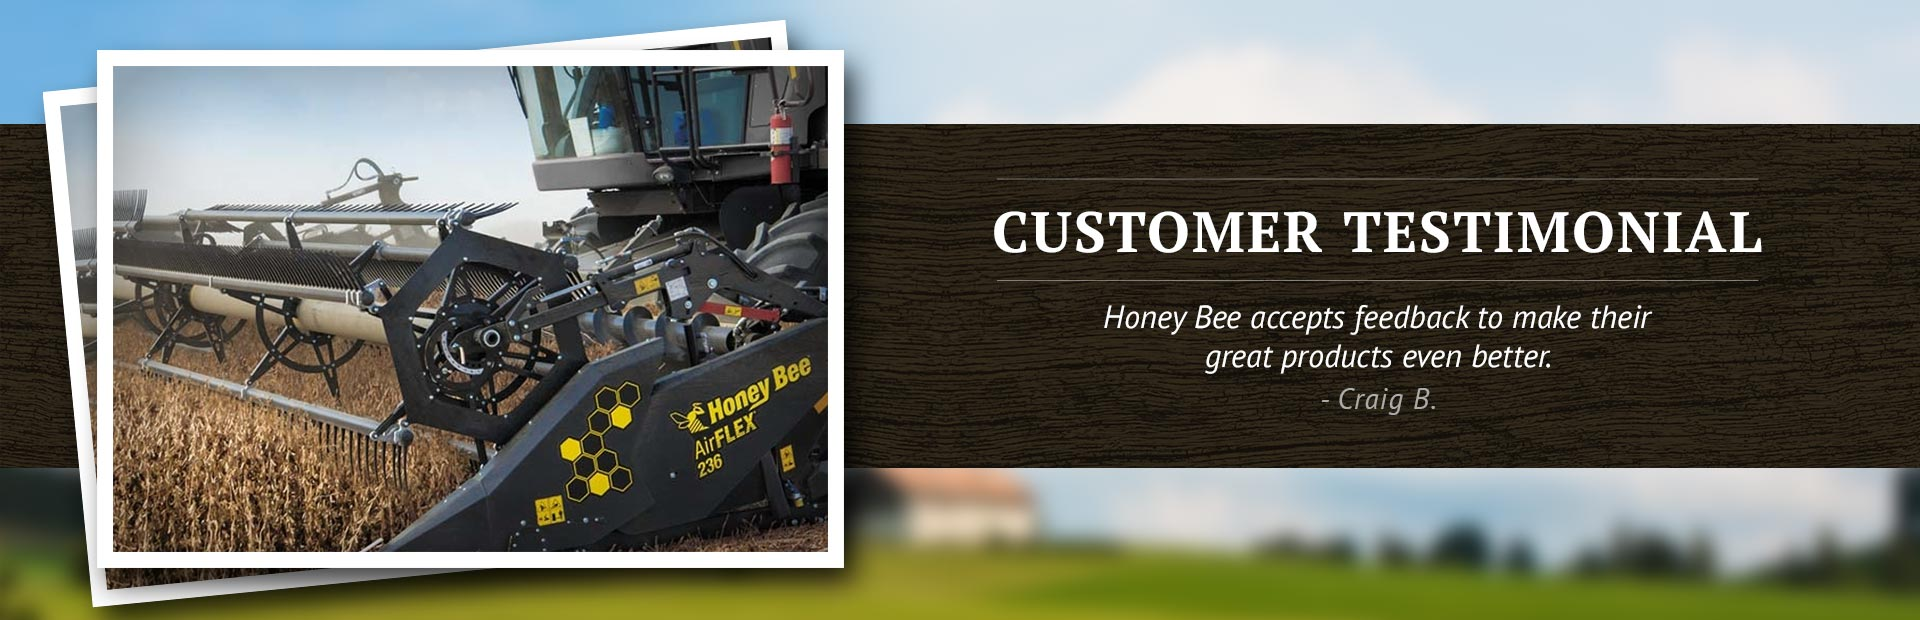 Customer Testimonial: Honey Bee accepts feedback to make their great products even better.